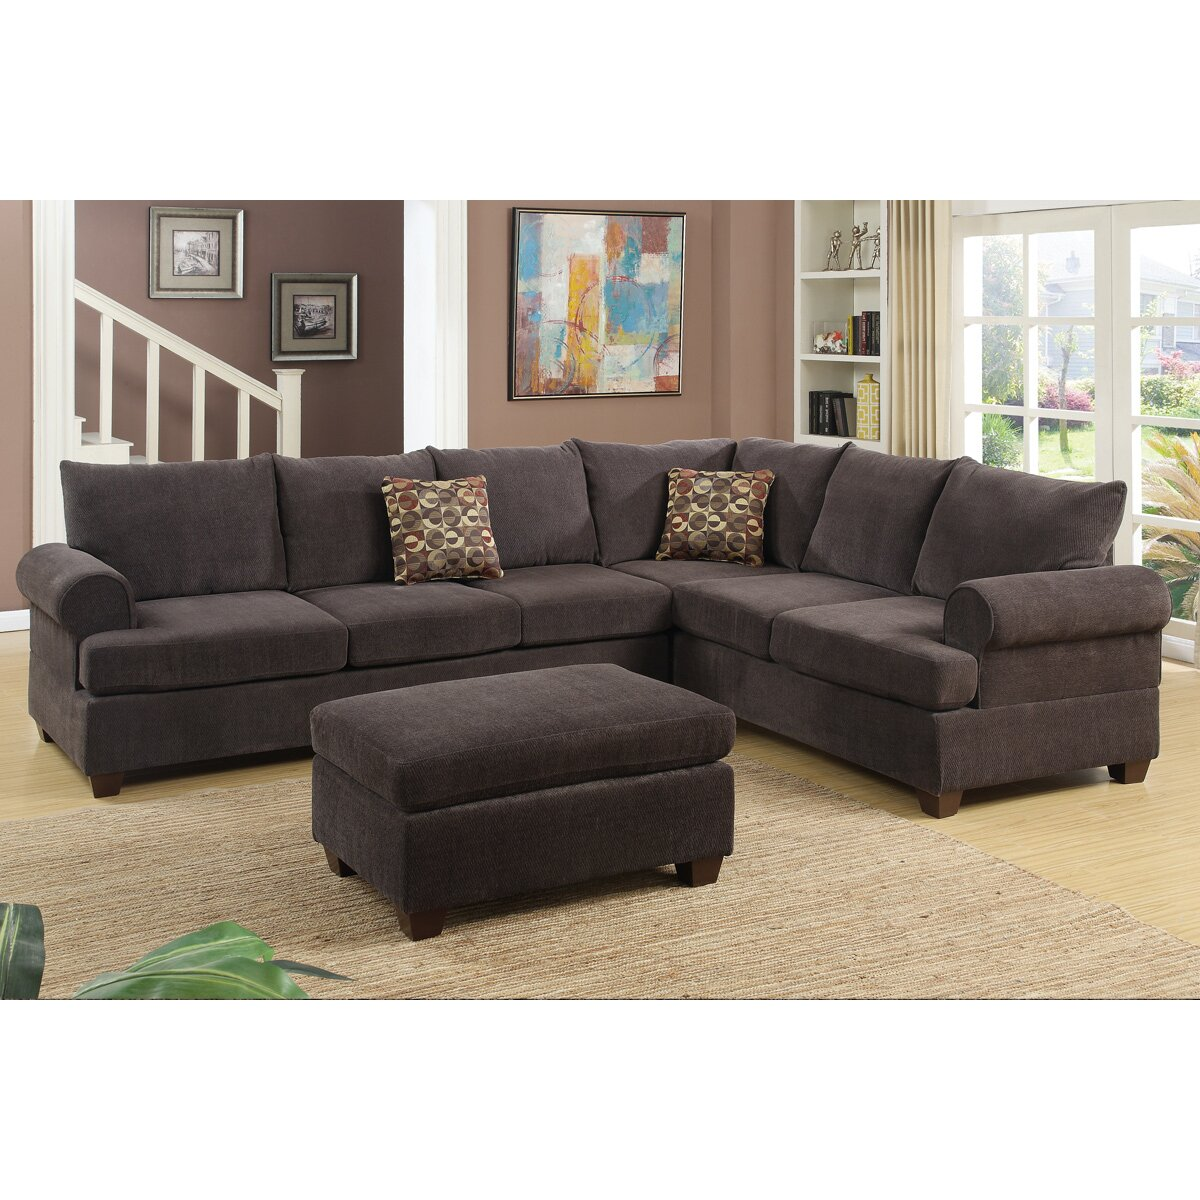 Poundex Bobkona Paxton Reversible Chaise Sectional ...